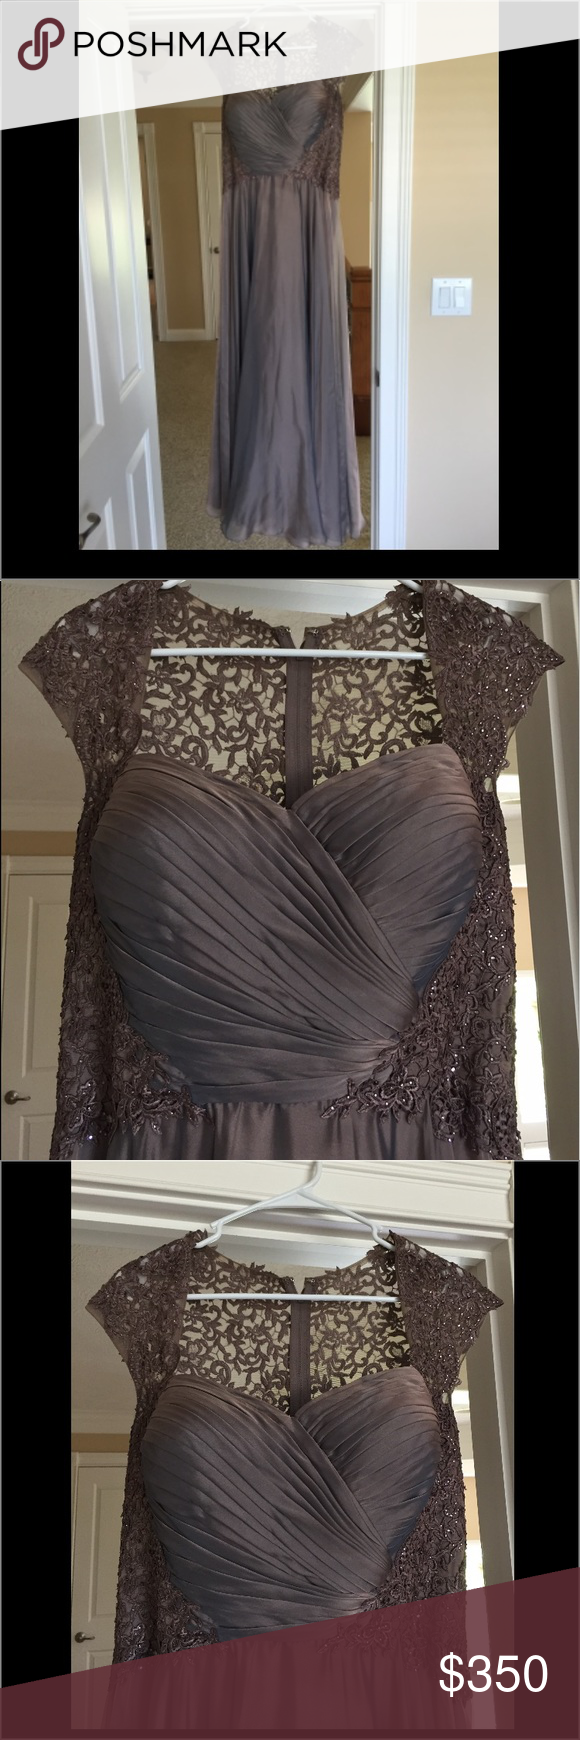 14ae600d1c3 Mother of the bride dress Brand new worn once. Purchased from NORDSTROM for   800. Great condition. Color cocoa Dresses Wedding